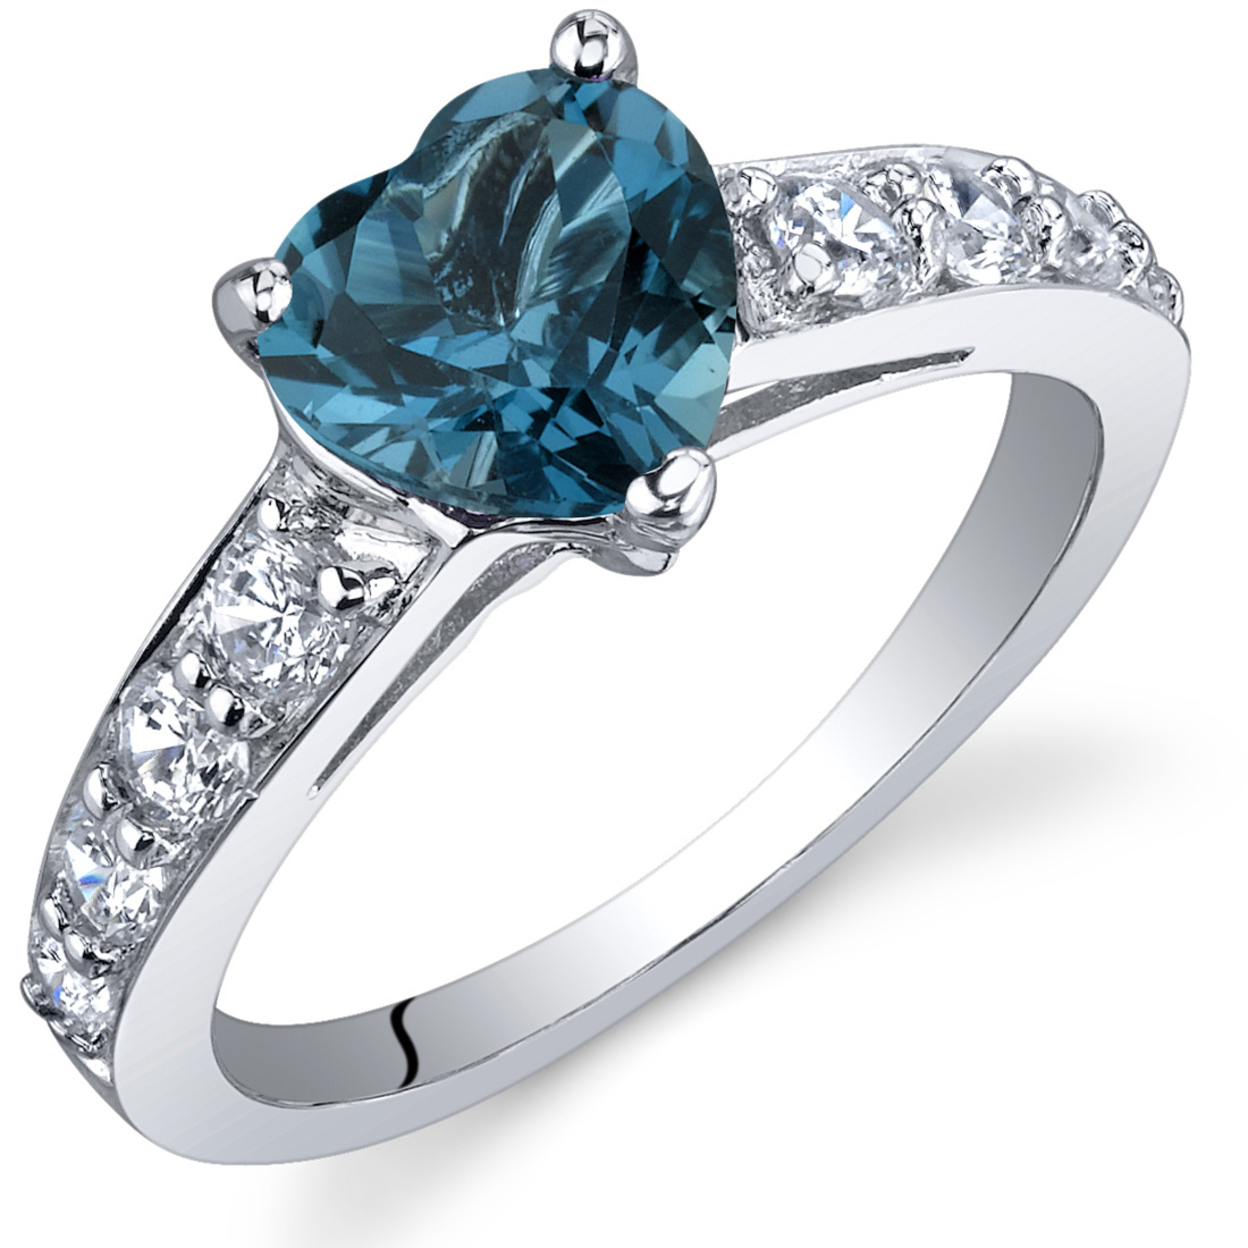 Oravo 1.25 Ct London Blue Topaz In Rhodium-plated Sterling Silver, Sizes 5-9